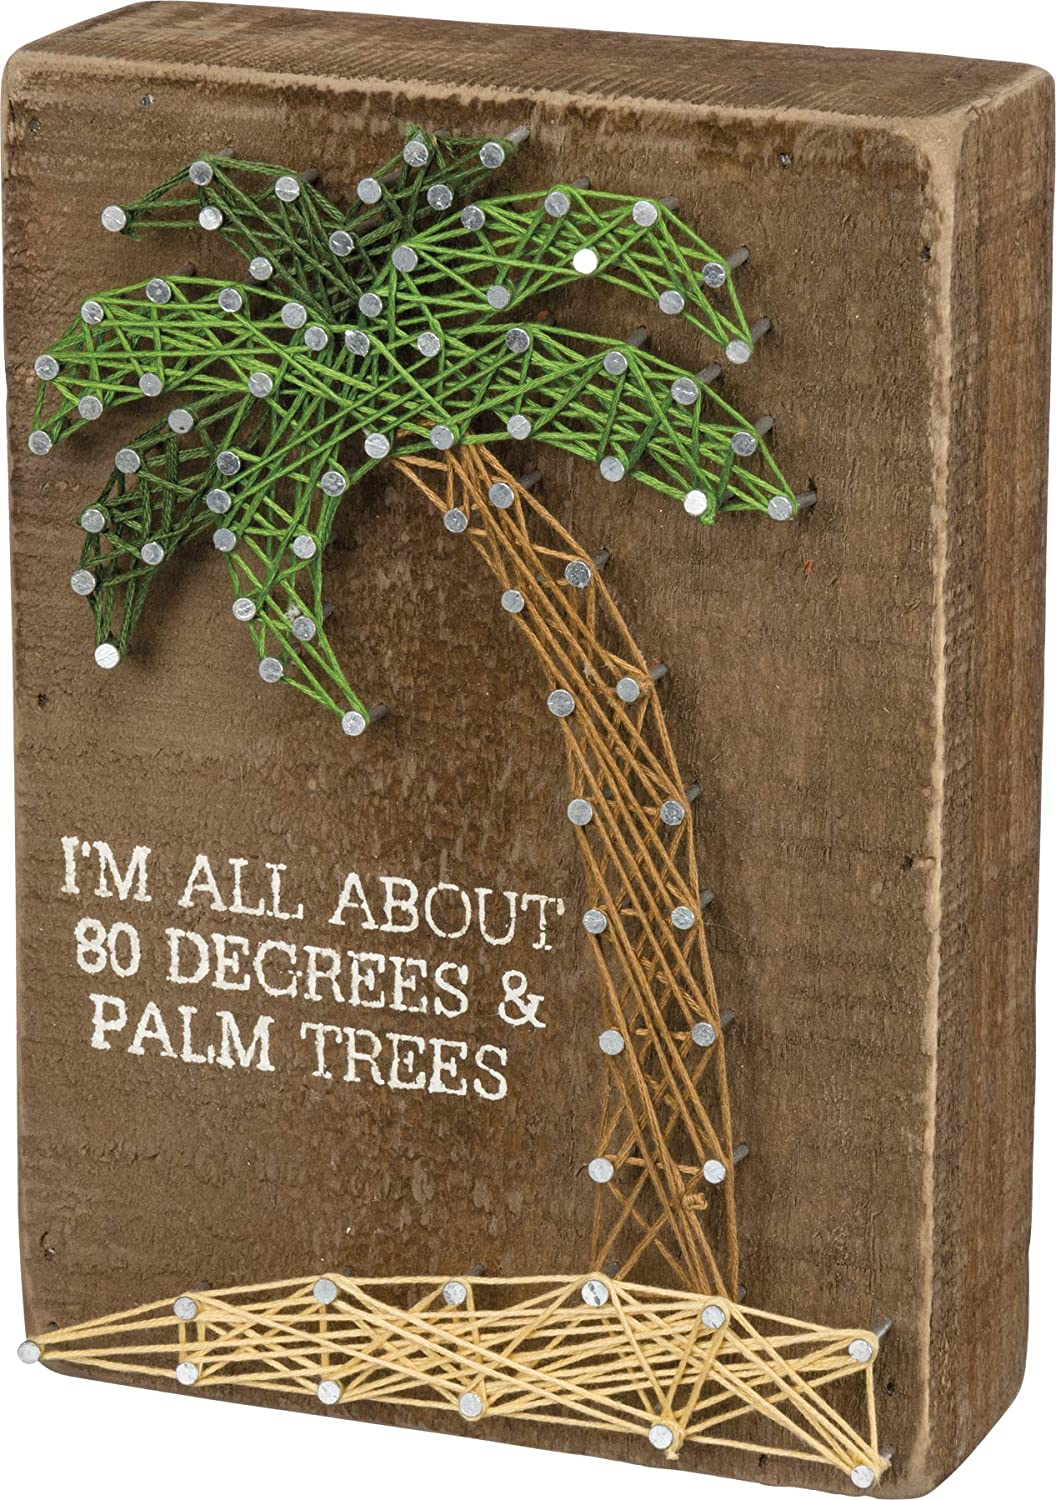 Primitives by Kathy 34654 String Art Box Sign, 5 x 7-Inches, 80 Degrees & Palm Trees